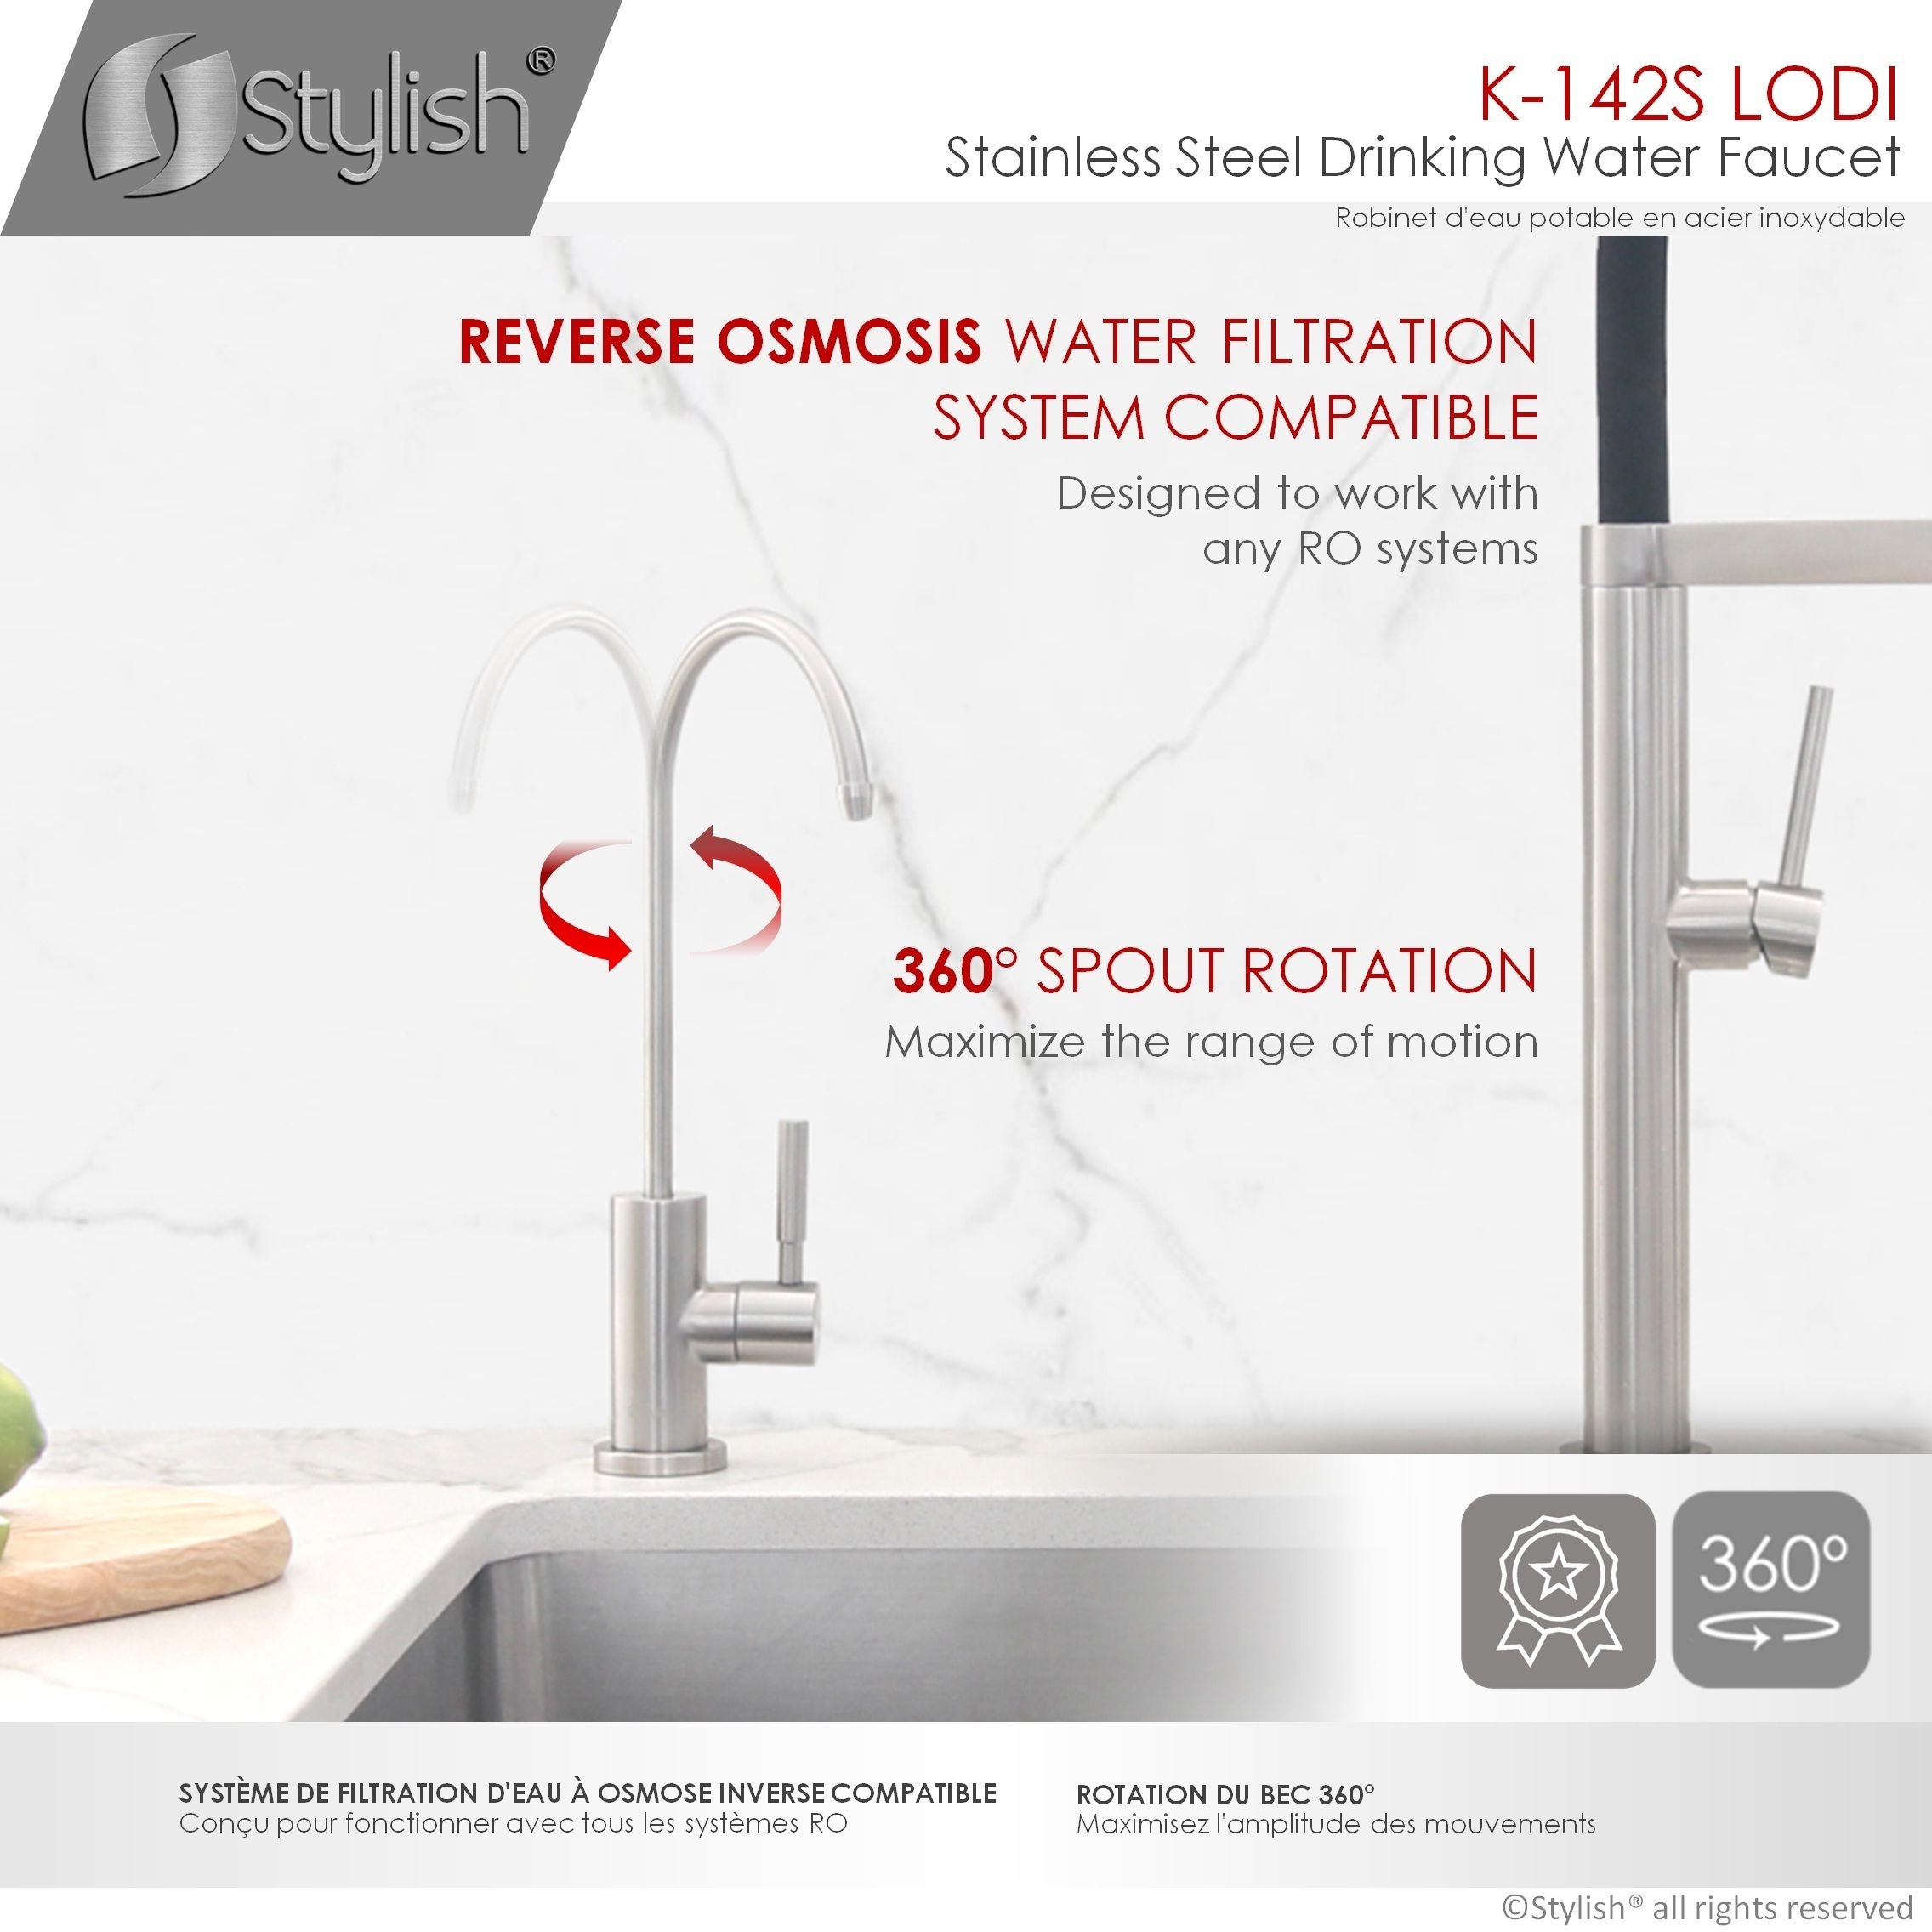 kitchen sink drinking water faucet commercial water filtration faucet stainless steel contemporary style high spout